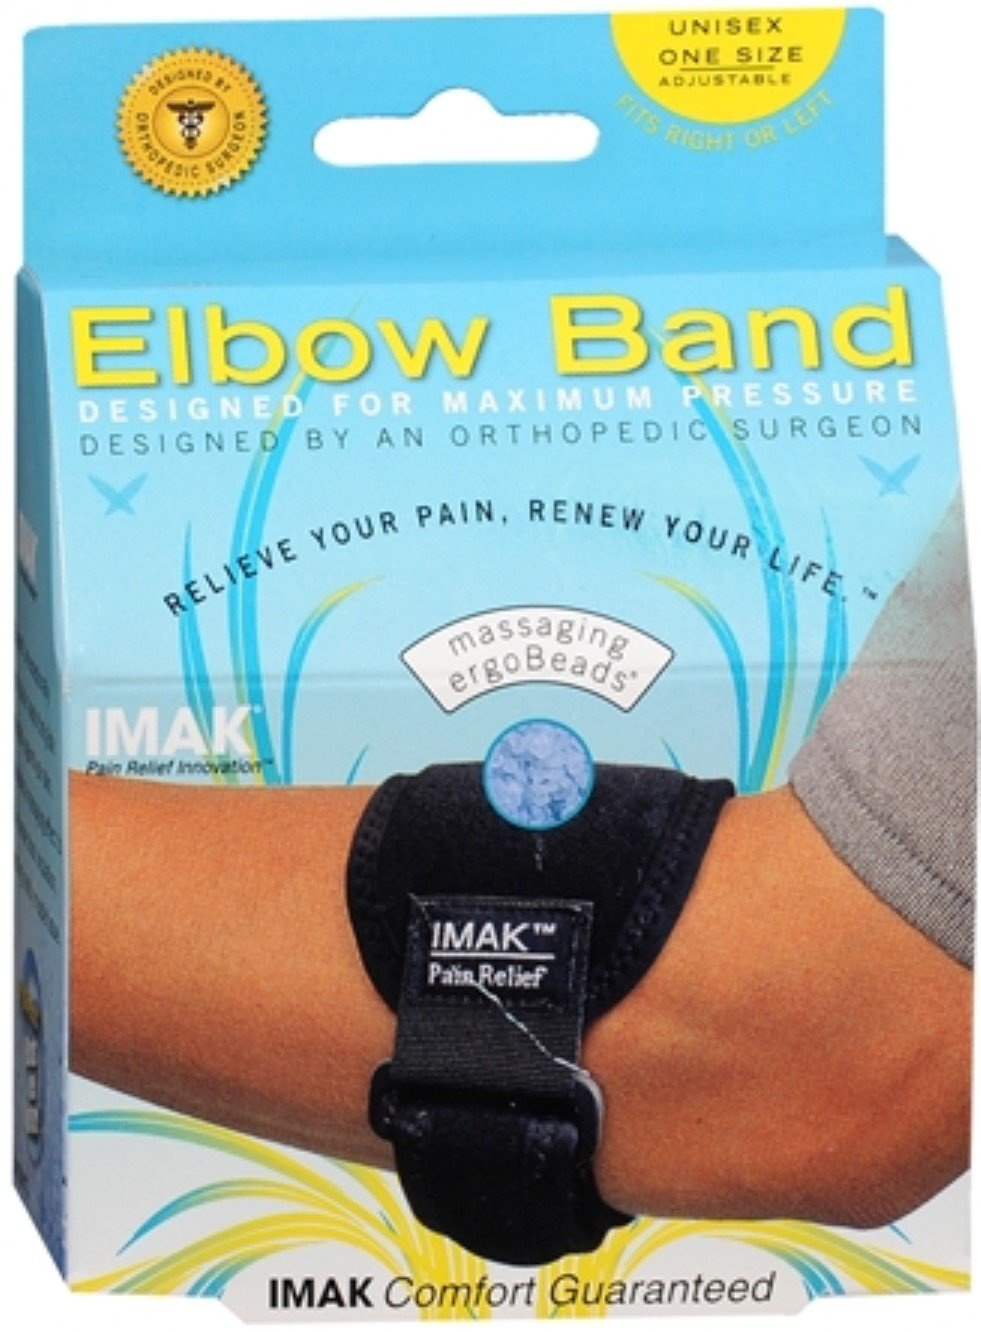 IMAK Elbow Band One Size 1 Each (Pack of 7)